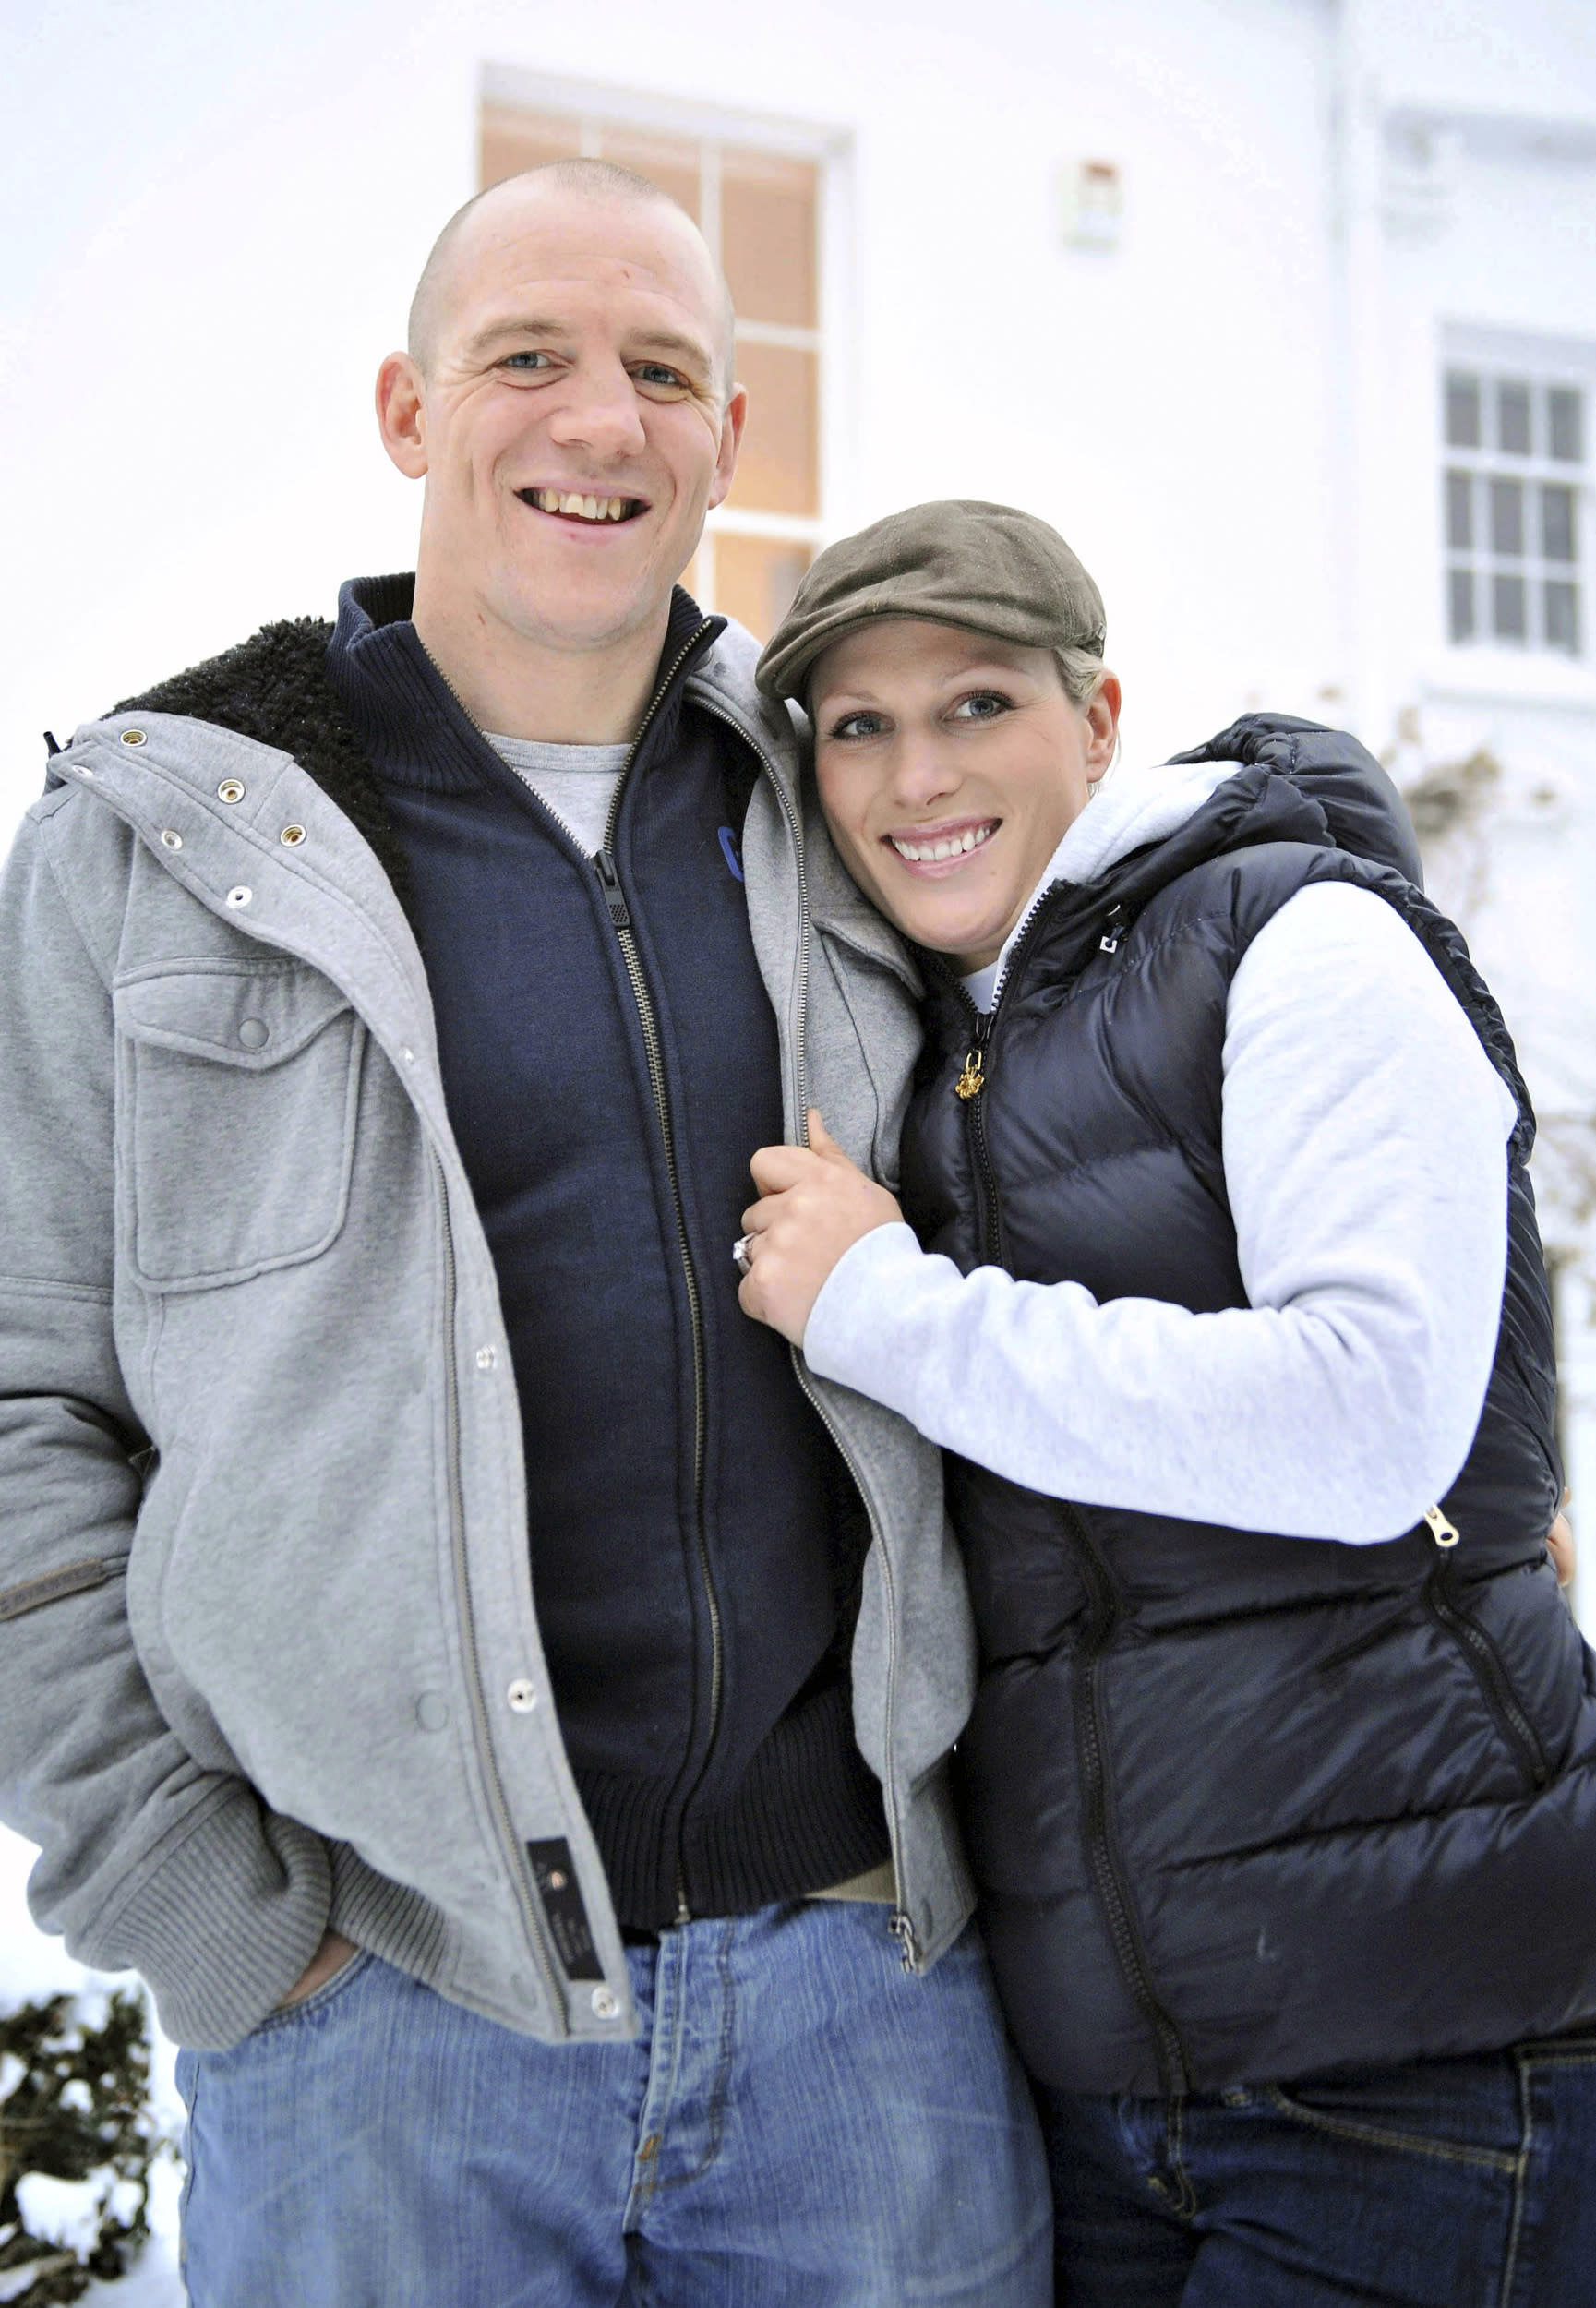 Zara Phillips and her fiance Mike Tindall pose for photographs at their home in Gloucestershire, south-west England December 21, 2010. Phillips, the granddaughter of Britain's Queen Elizabeth, is to marry rugby player Tindall, the royal family said on Tuesday. REUTERS/Tim Ireland/Pool   (BRITAIN - Tags: ROYALS ENTERTAINMENT SPORT RUGBY)